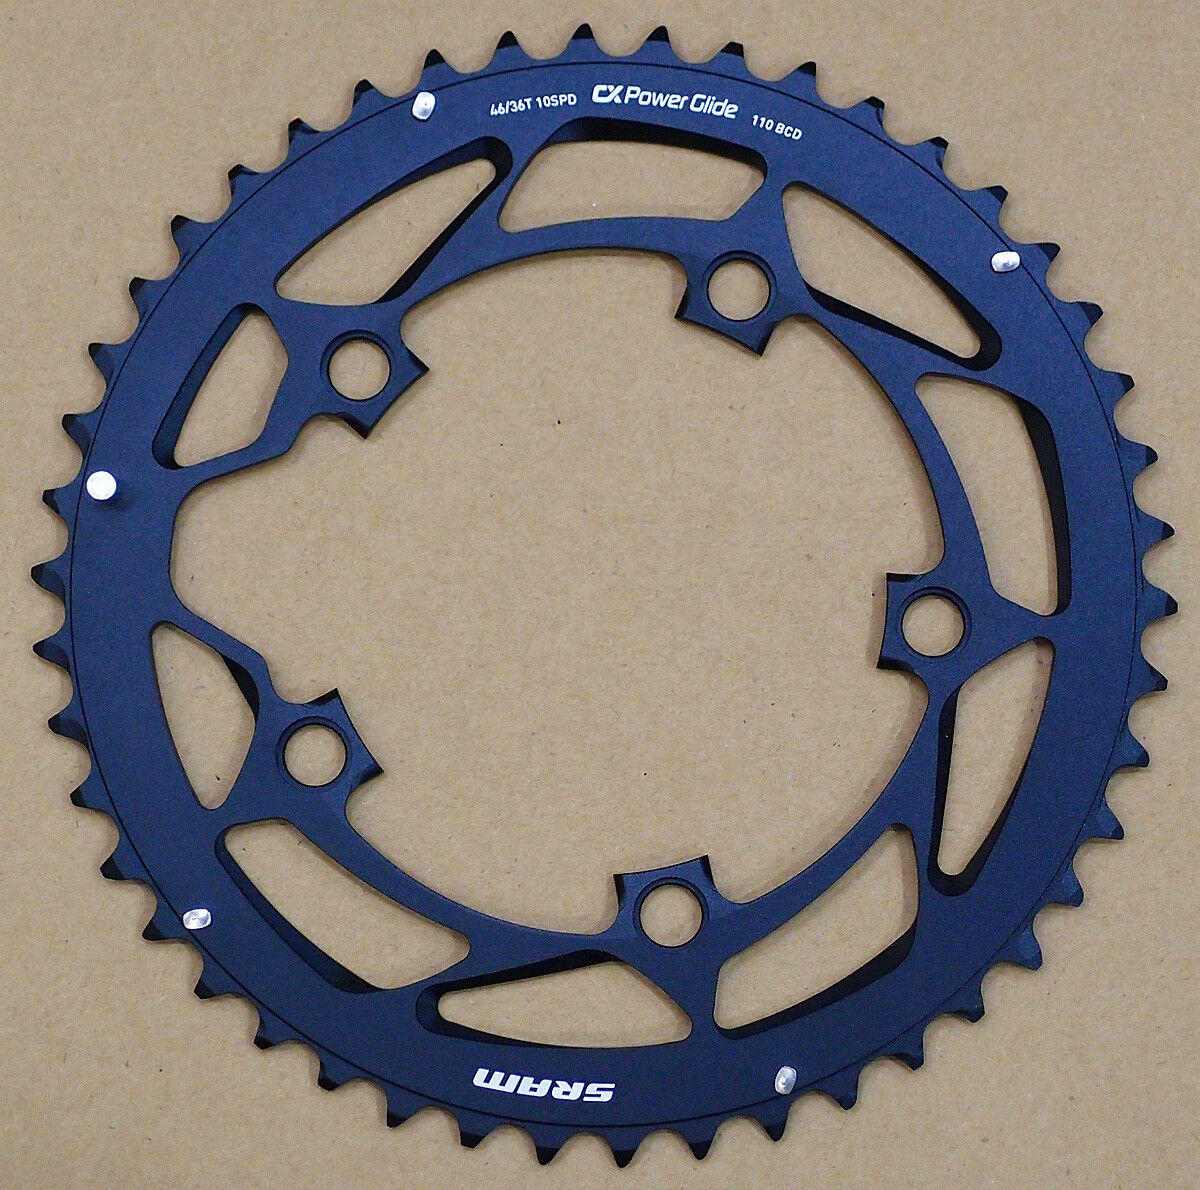 Sram Truvativ CX Powerglide ciclocross PLATO 46T, BCD 110mm, L-Pin para GXP